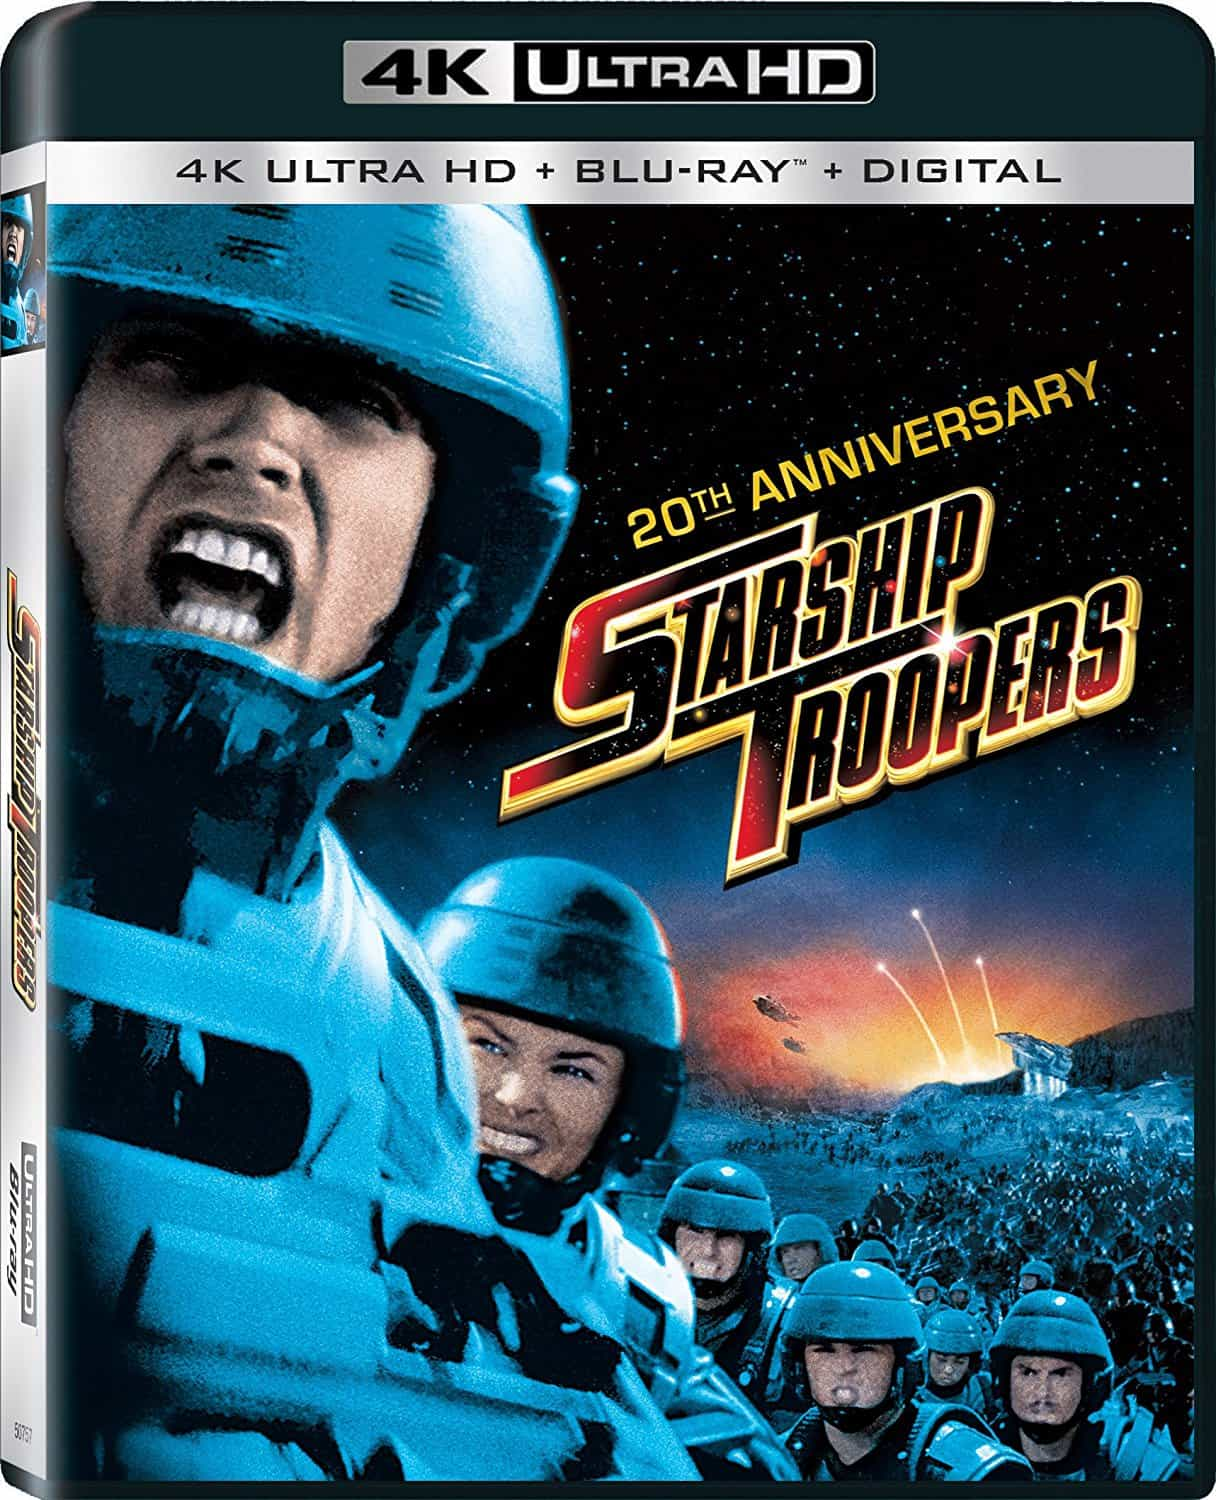 Starship Troopers 4K HDR RIP 1997 Ultra HD 2160p